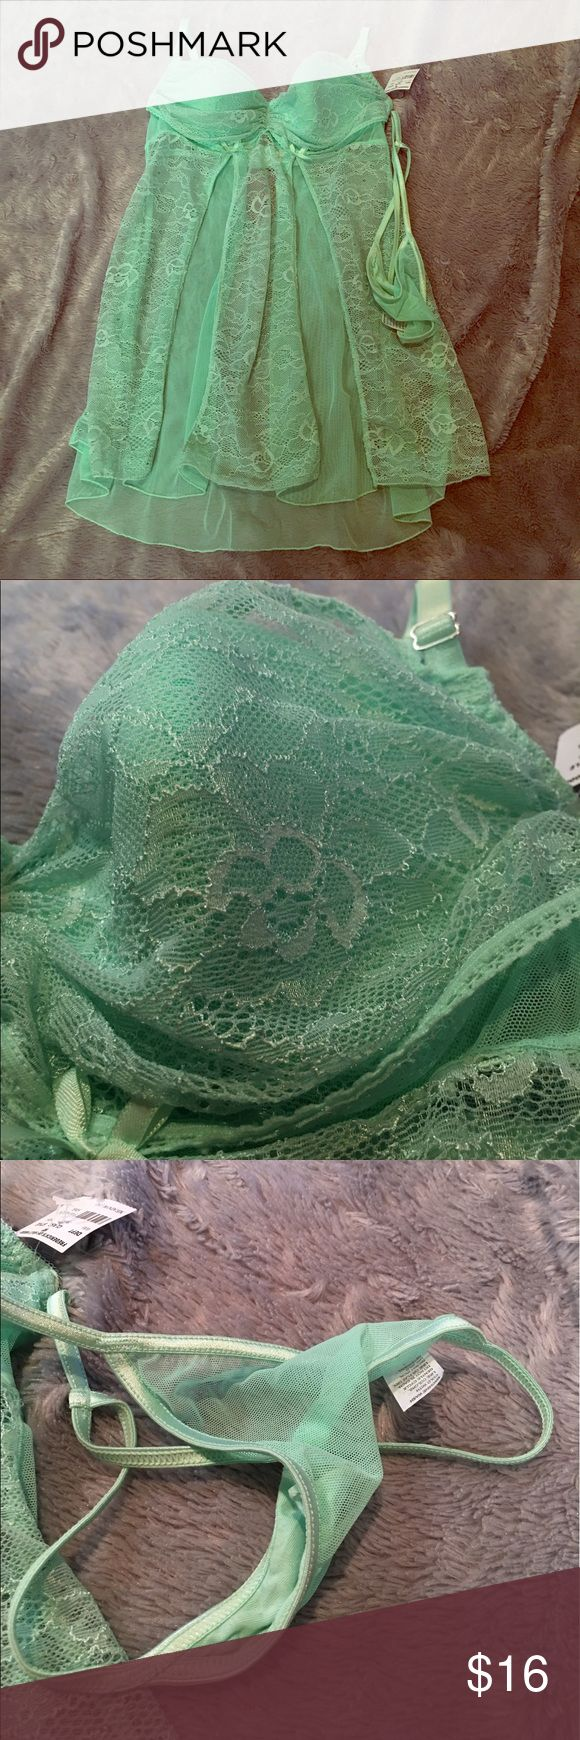 Frederick's of Hollywood Frederick's of Hollywood Lingerie. NWT. Size small. No cup noted, looks B-C cup. Seafoam Green. ❌No Trades❌Proceeds go towards feeding the homeless❌ Frederick's of Hollywood Intimates & Sleepwear Chemises & Slips